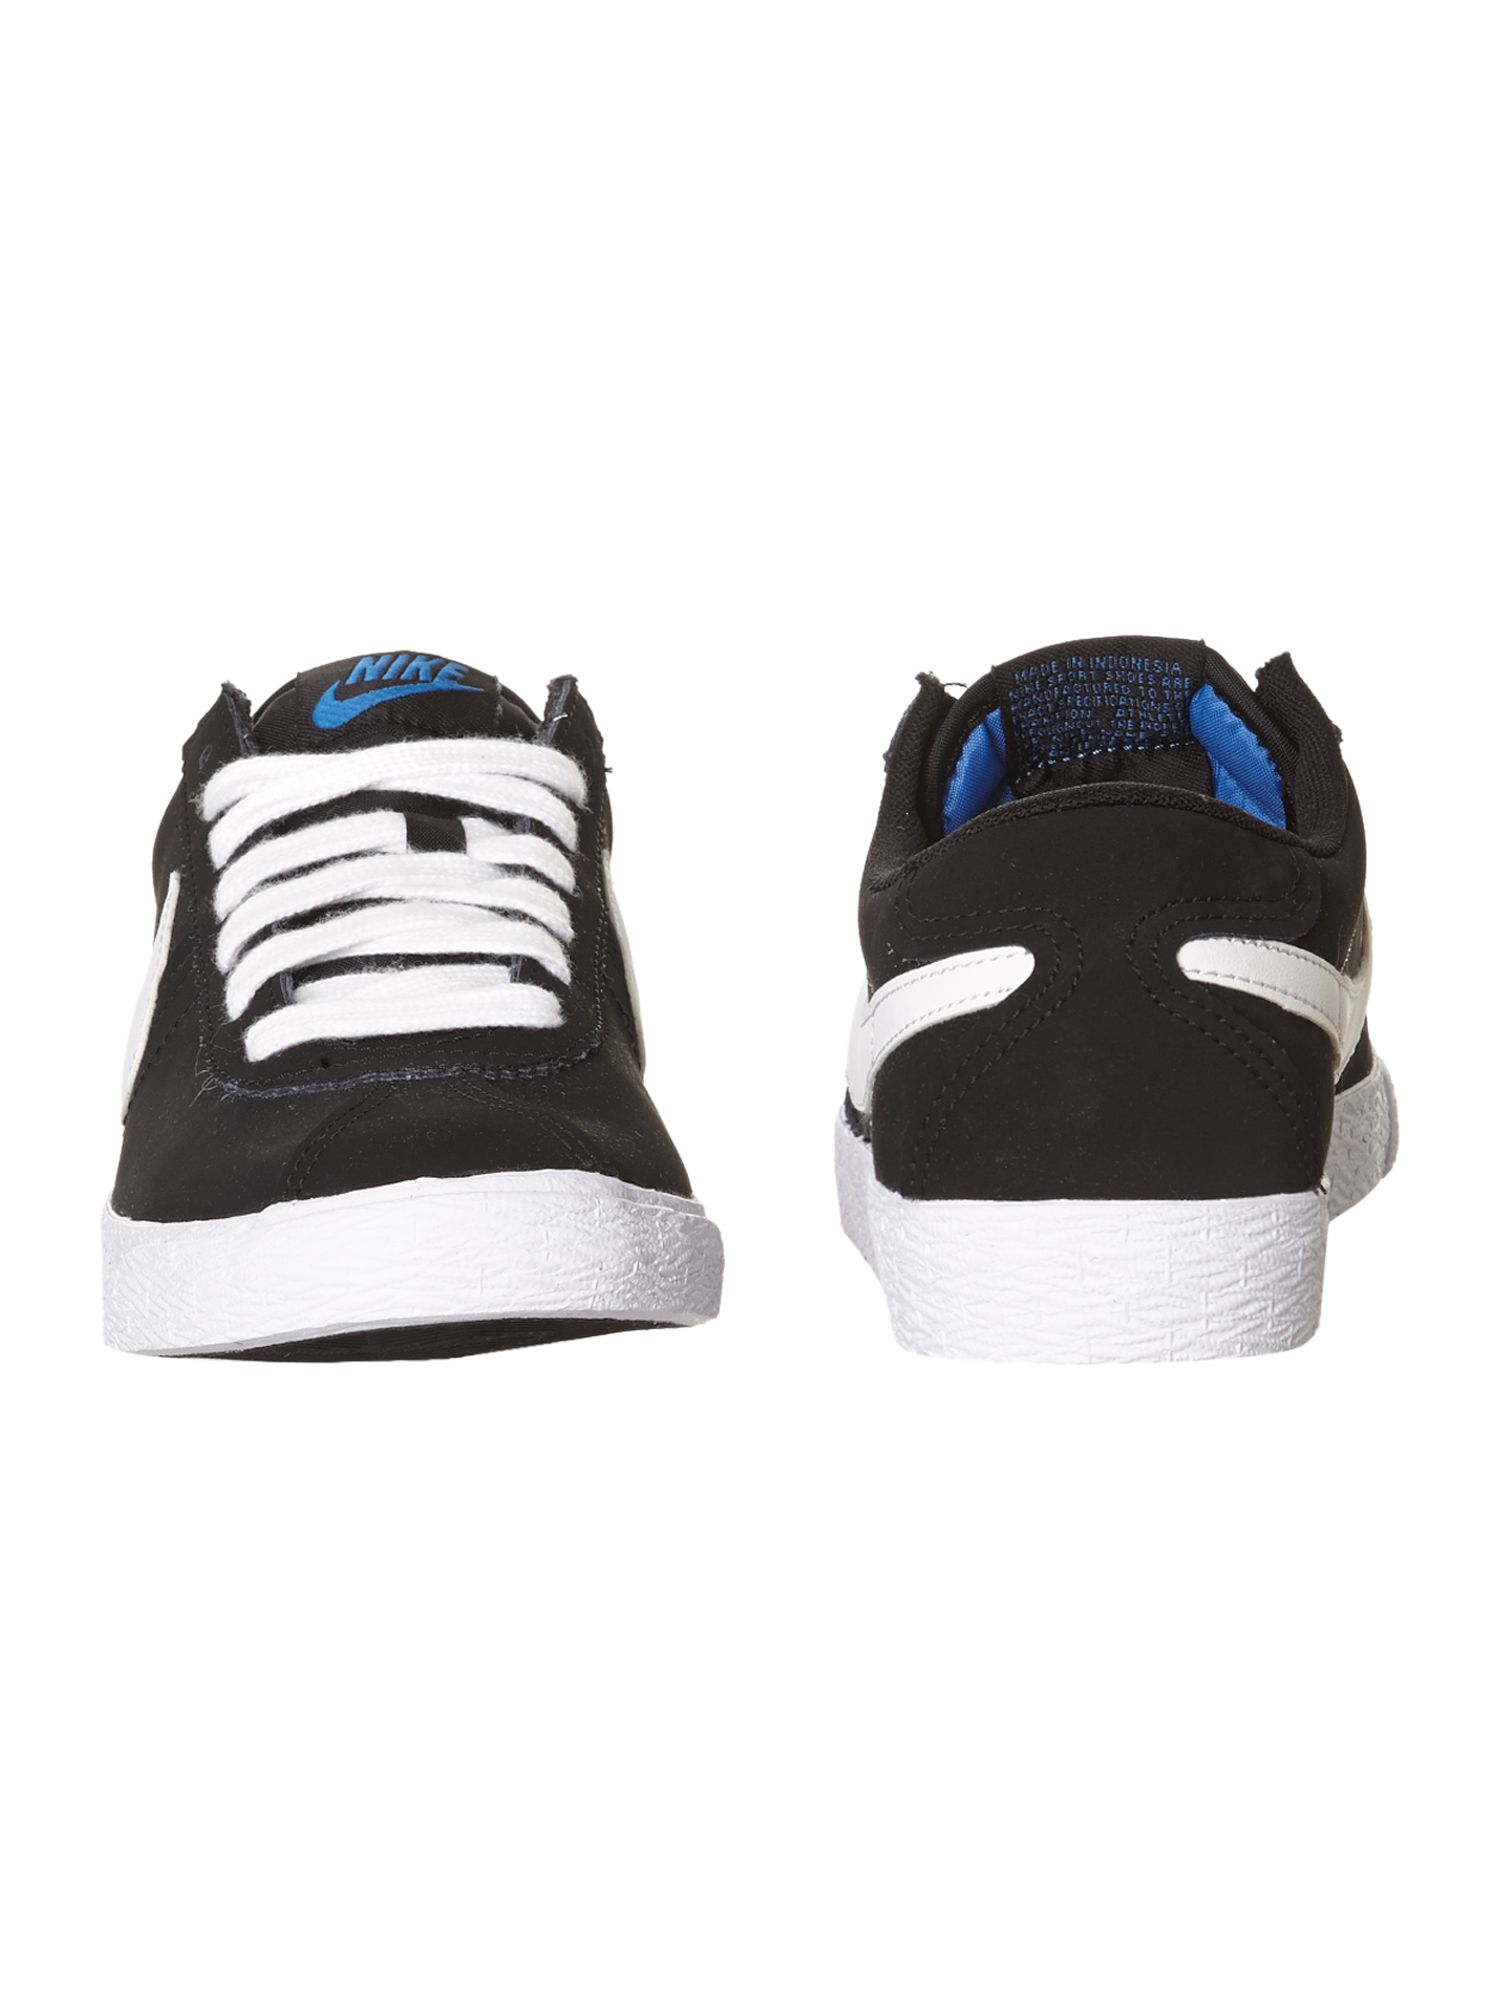 Bruin low top trainer